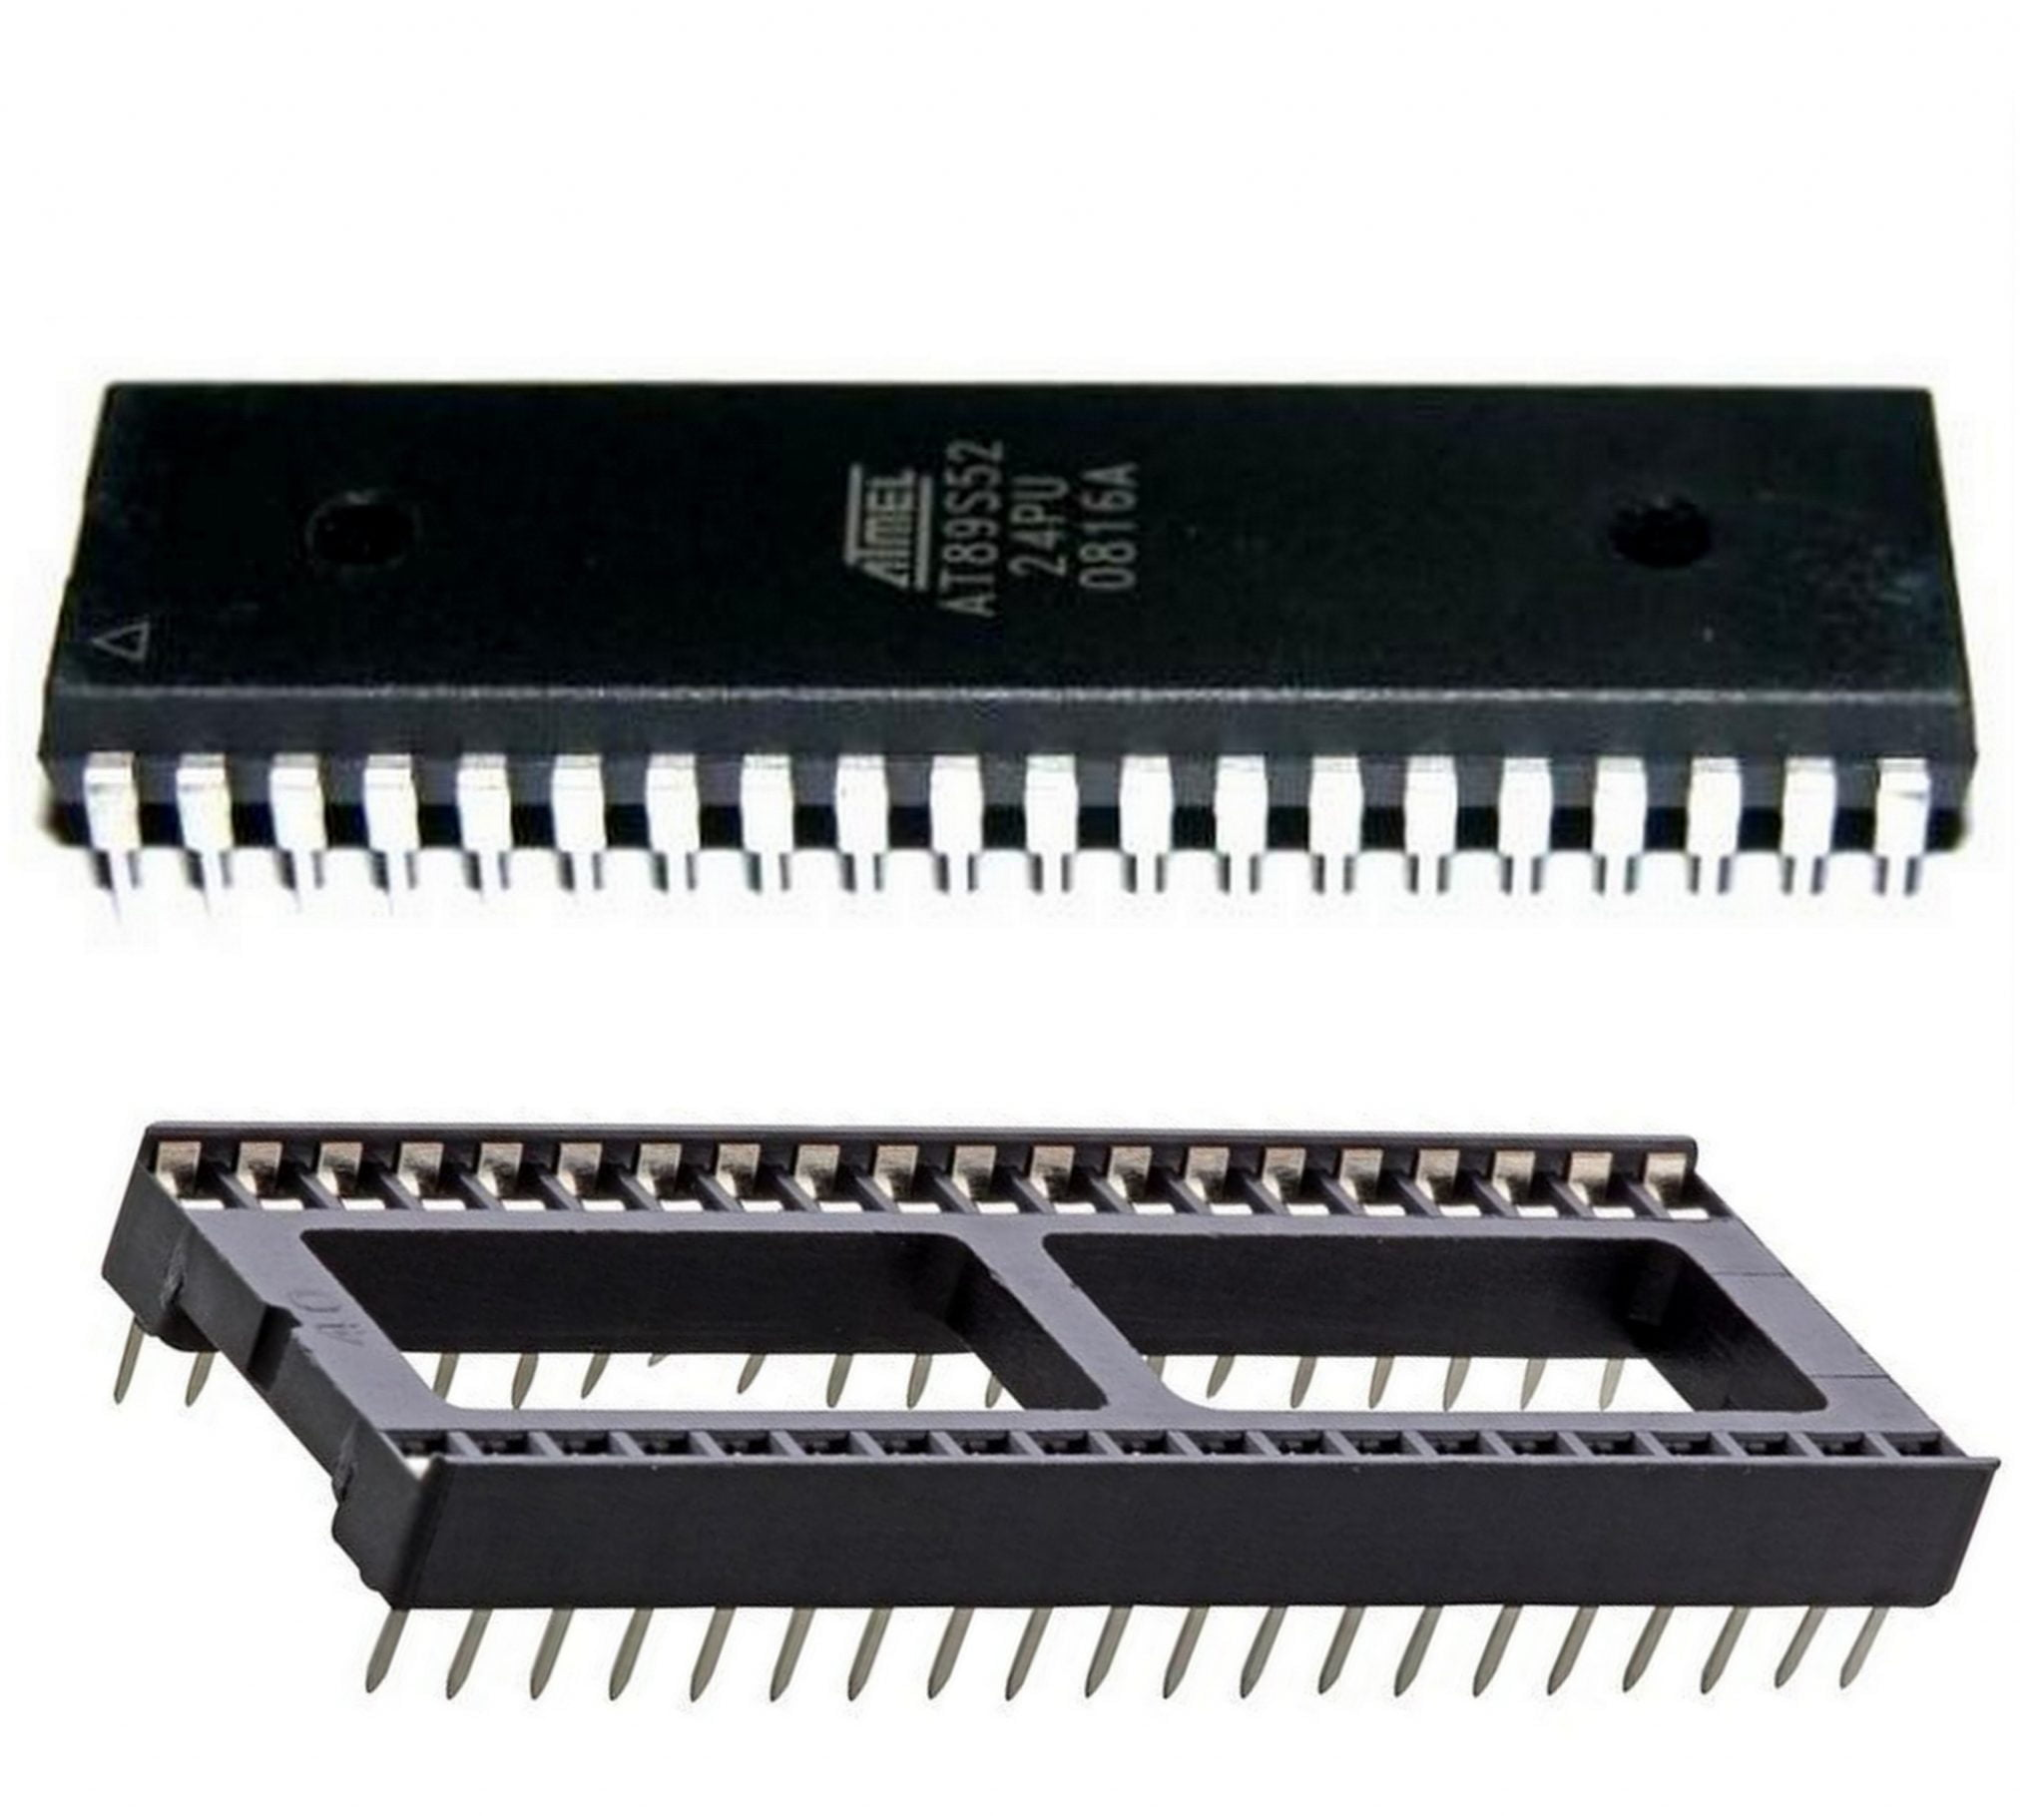 40 Pin Ic Base 40pin Socket Dip Package With 89s52 Chip 8051 Where To Buy Integrated Circuit Base40pin Is Use For